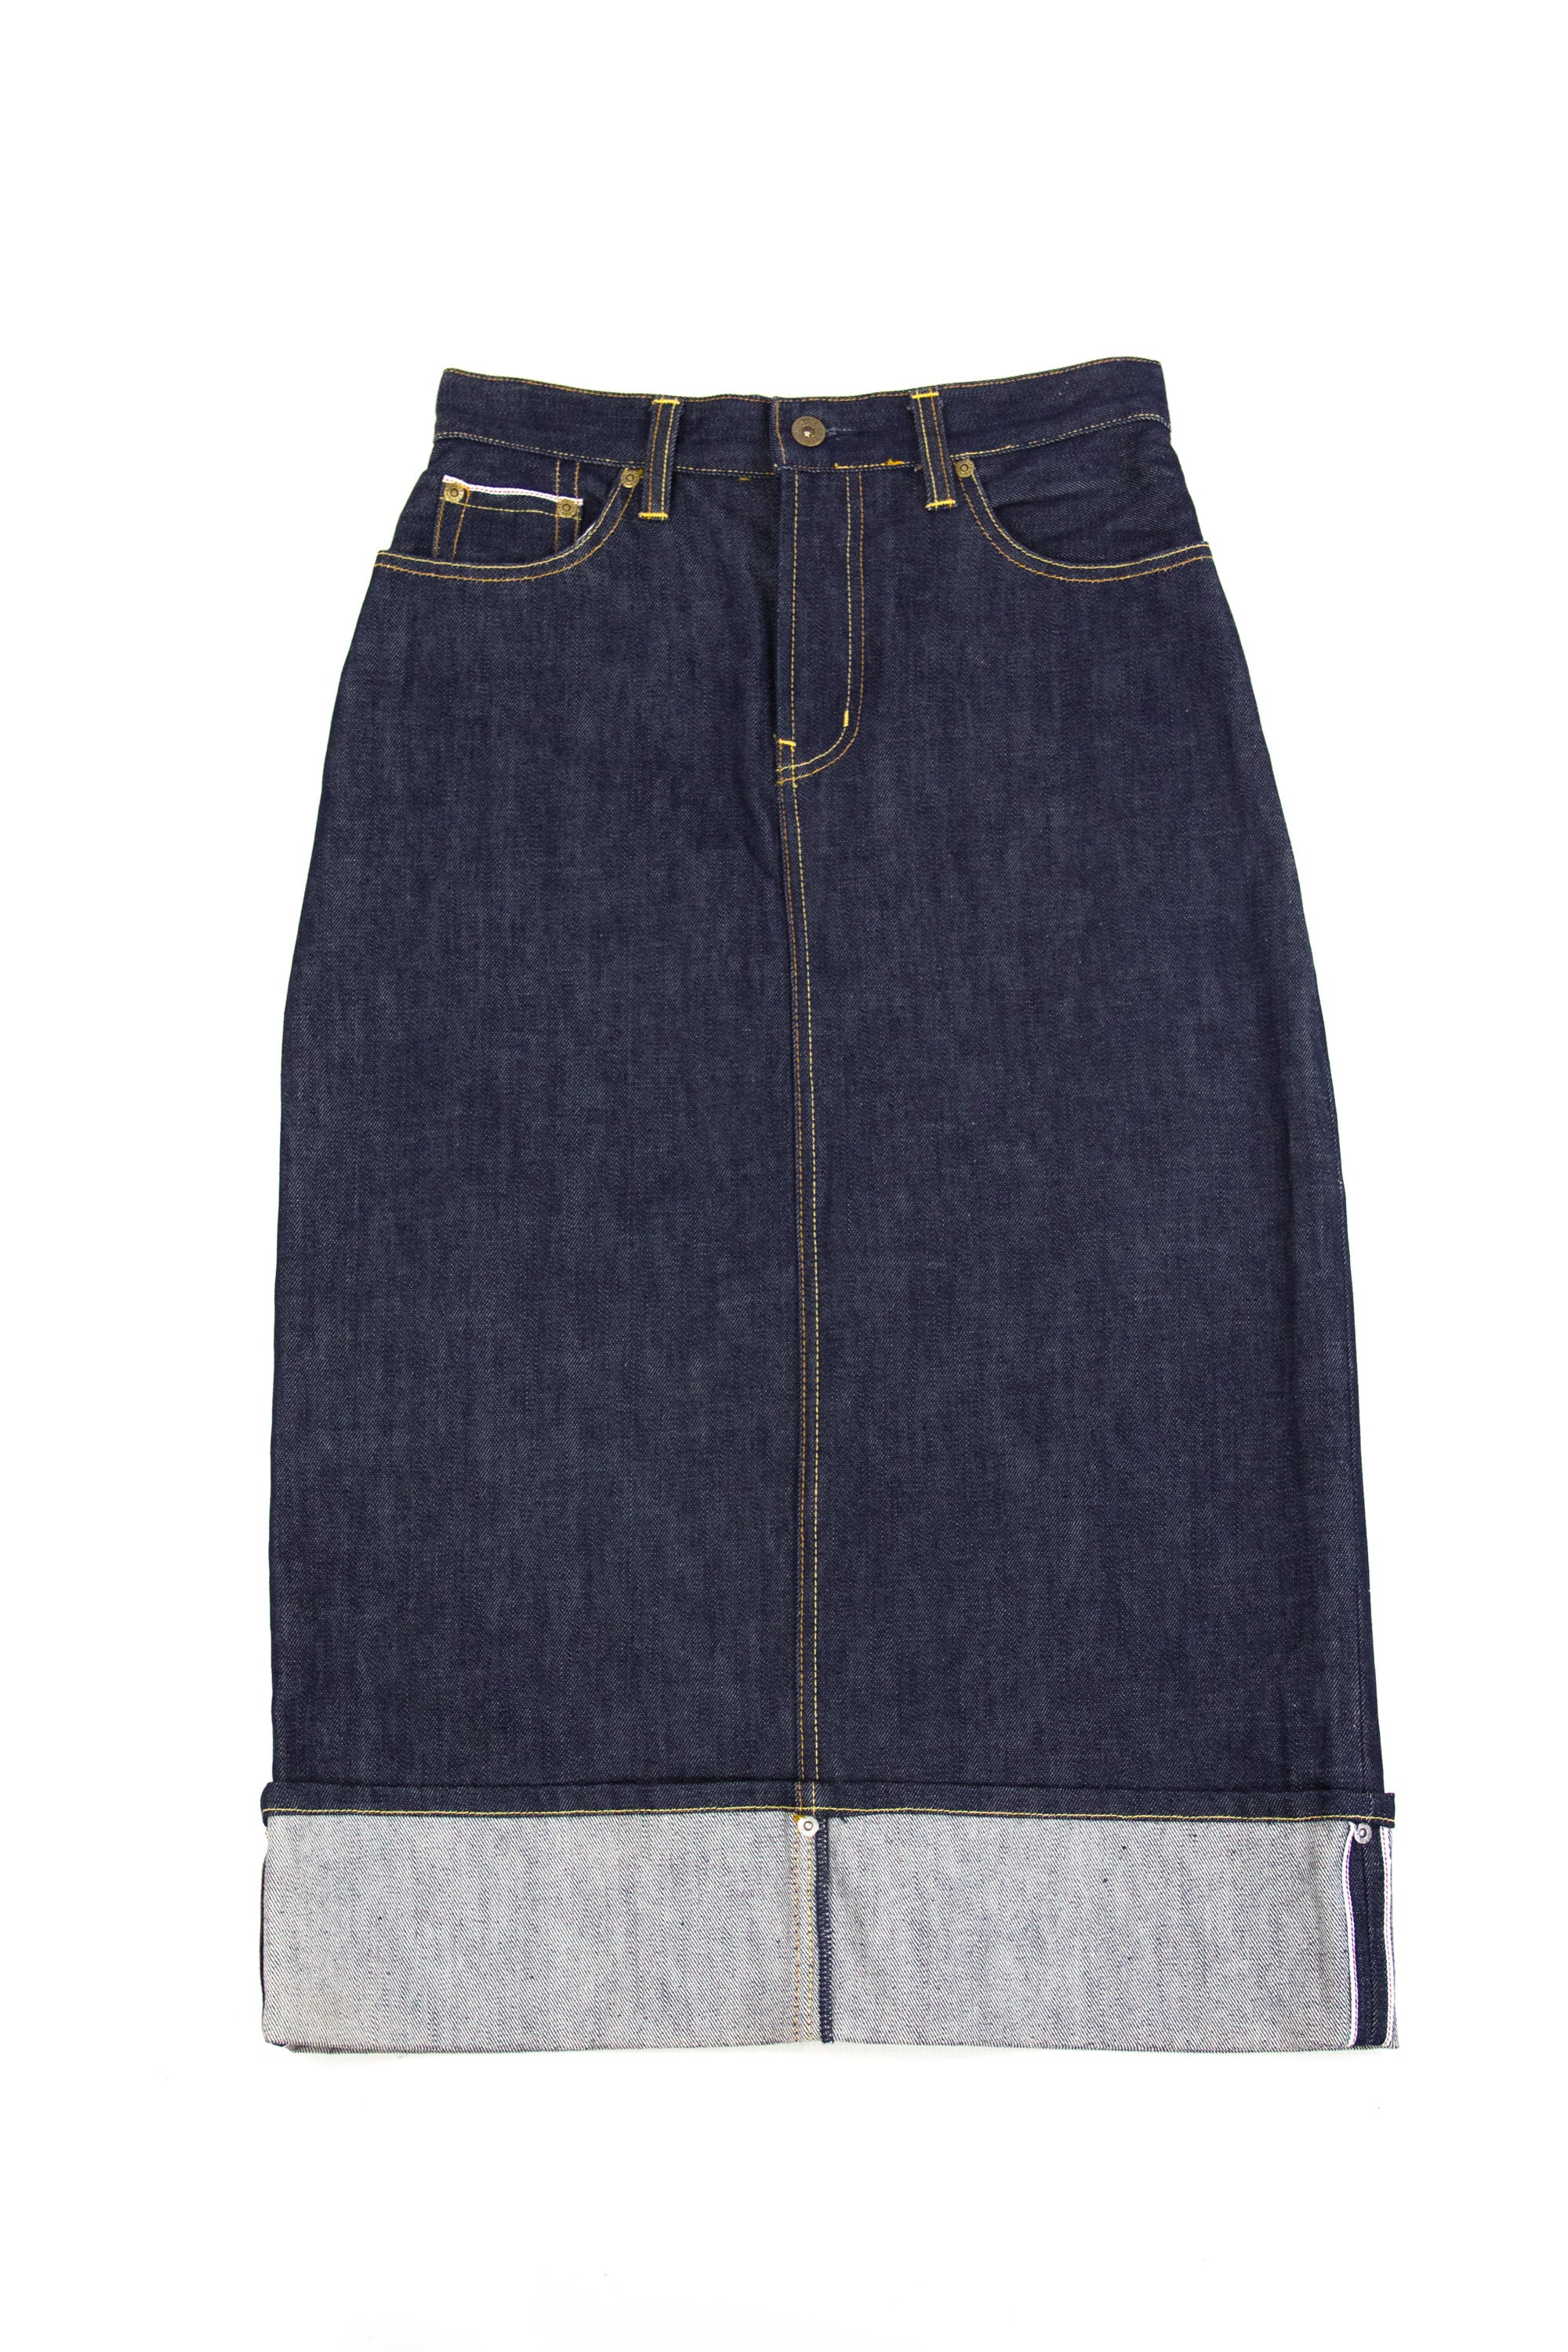 PEPE JEANS Selvage Denim Midi Skirt USA 28, UK 10, M - secondfirst